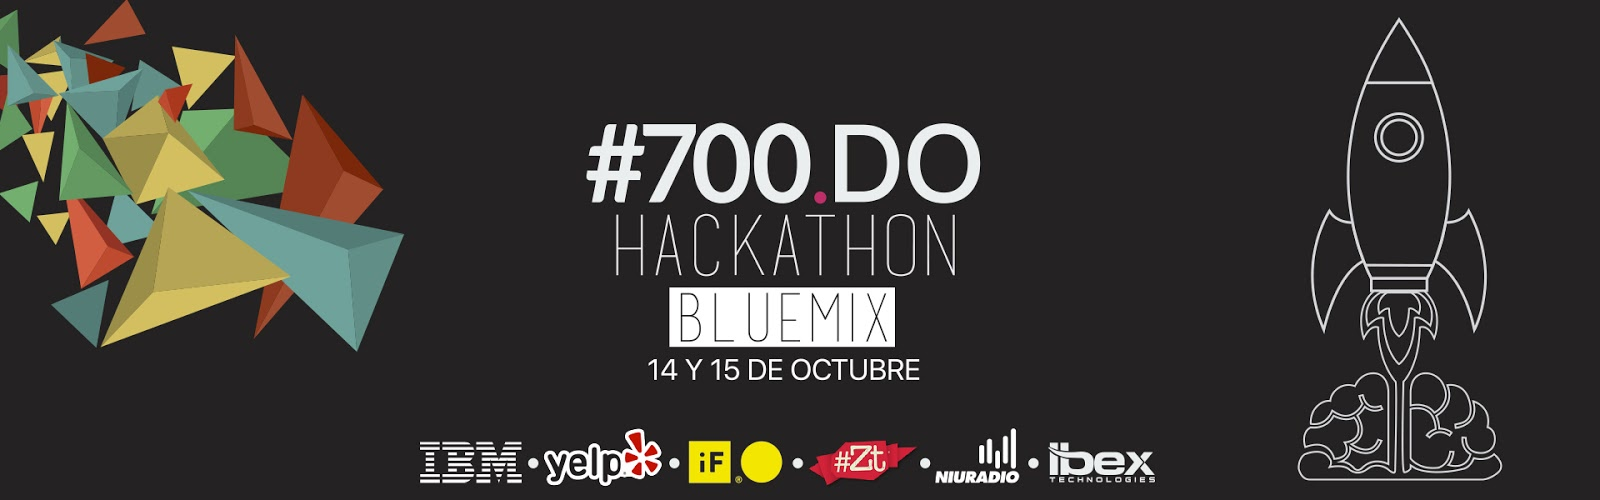 Hackathon 700.DO